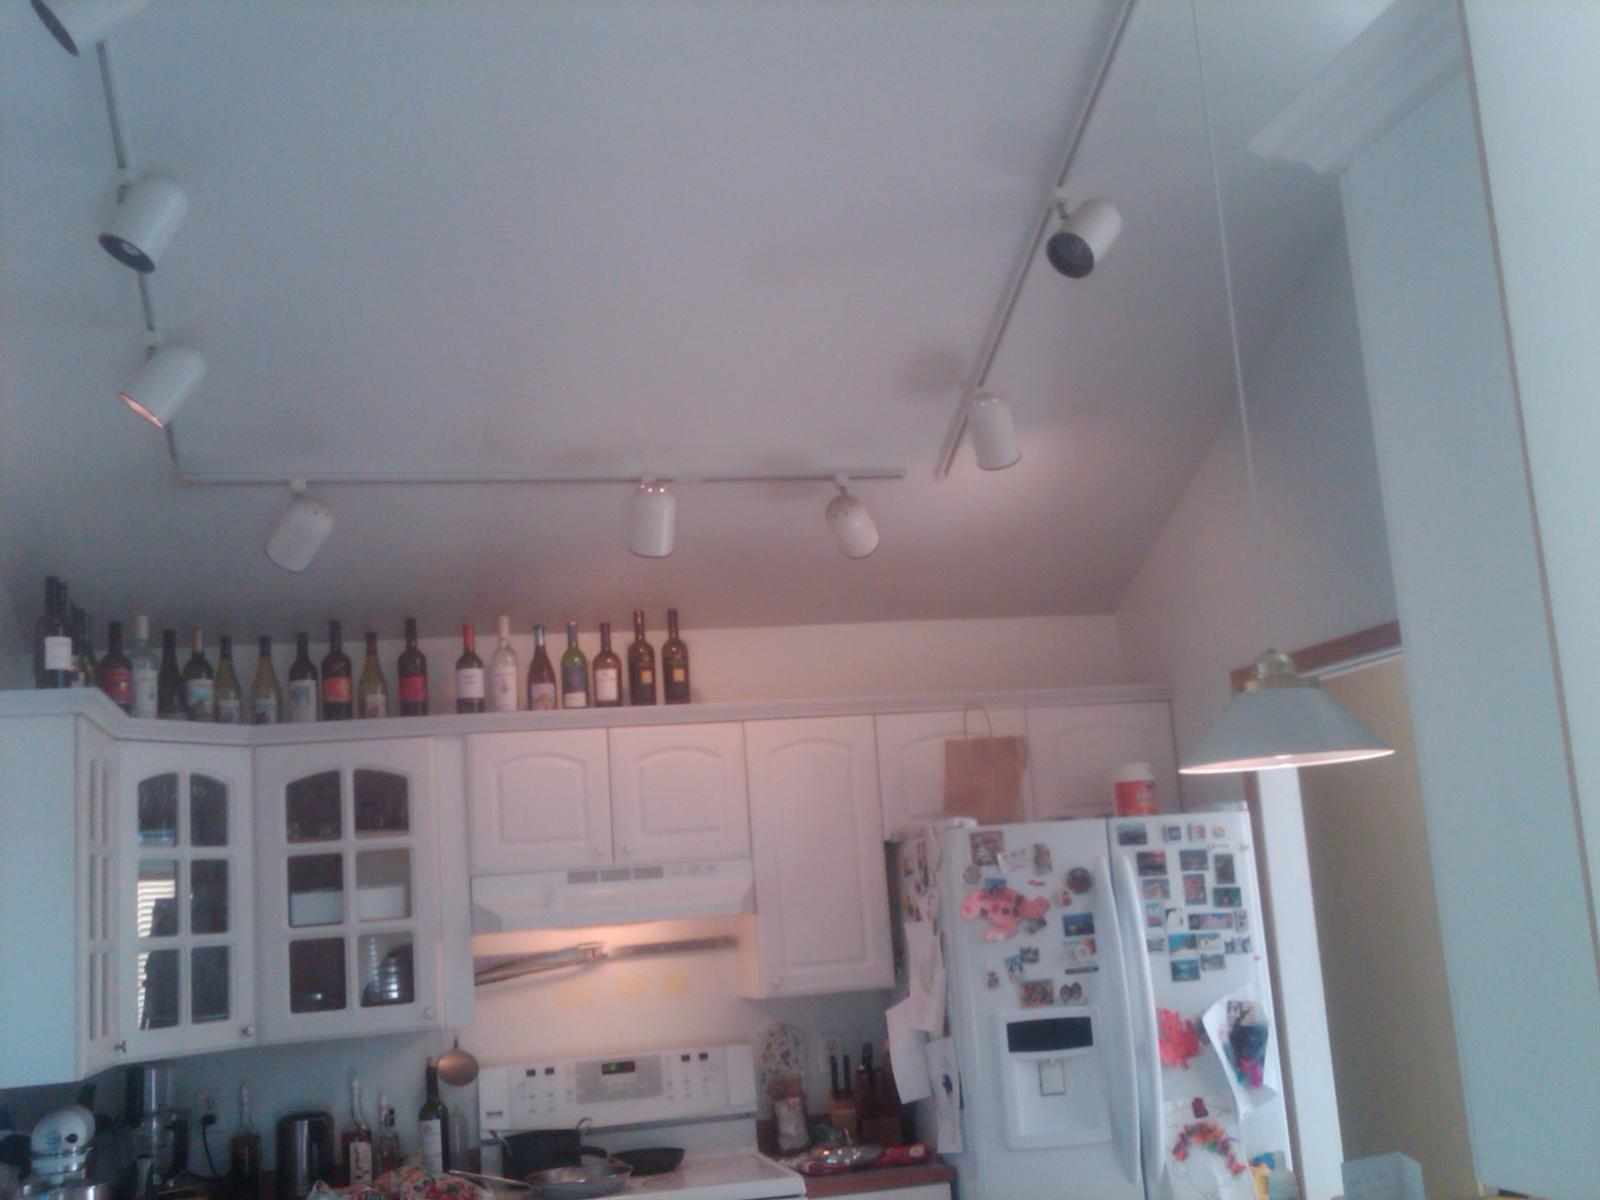 track lighting solutions. Kitchen Needs Lighting Solution, And I\u0027m Stumped. Track Solutions